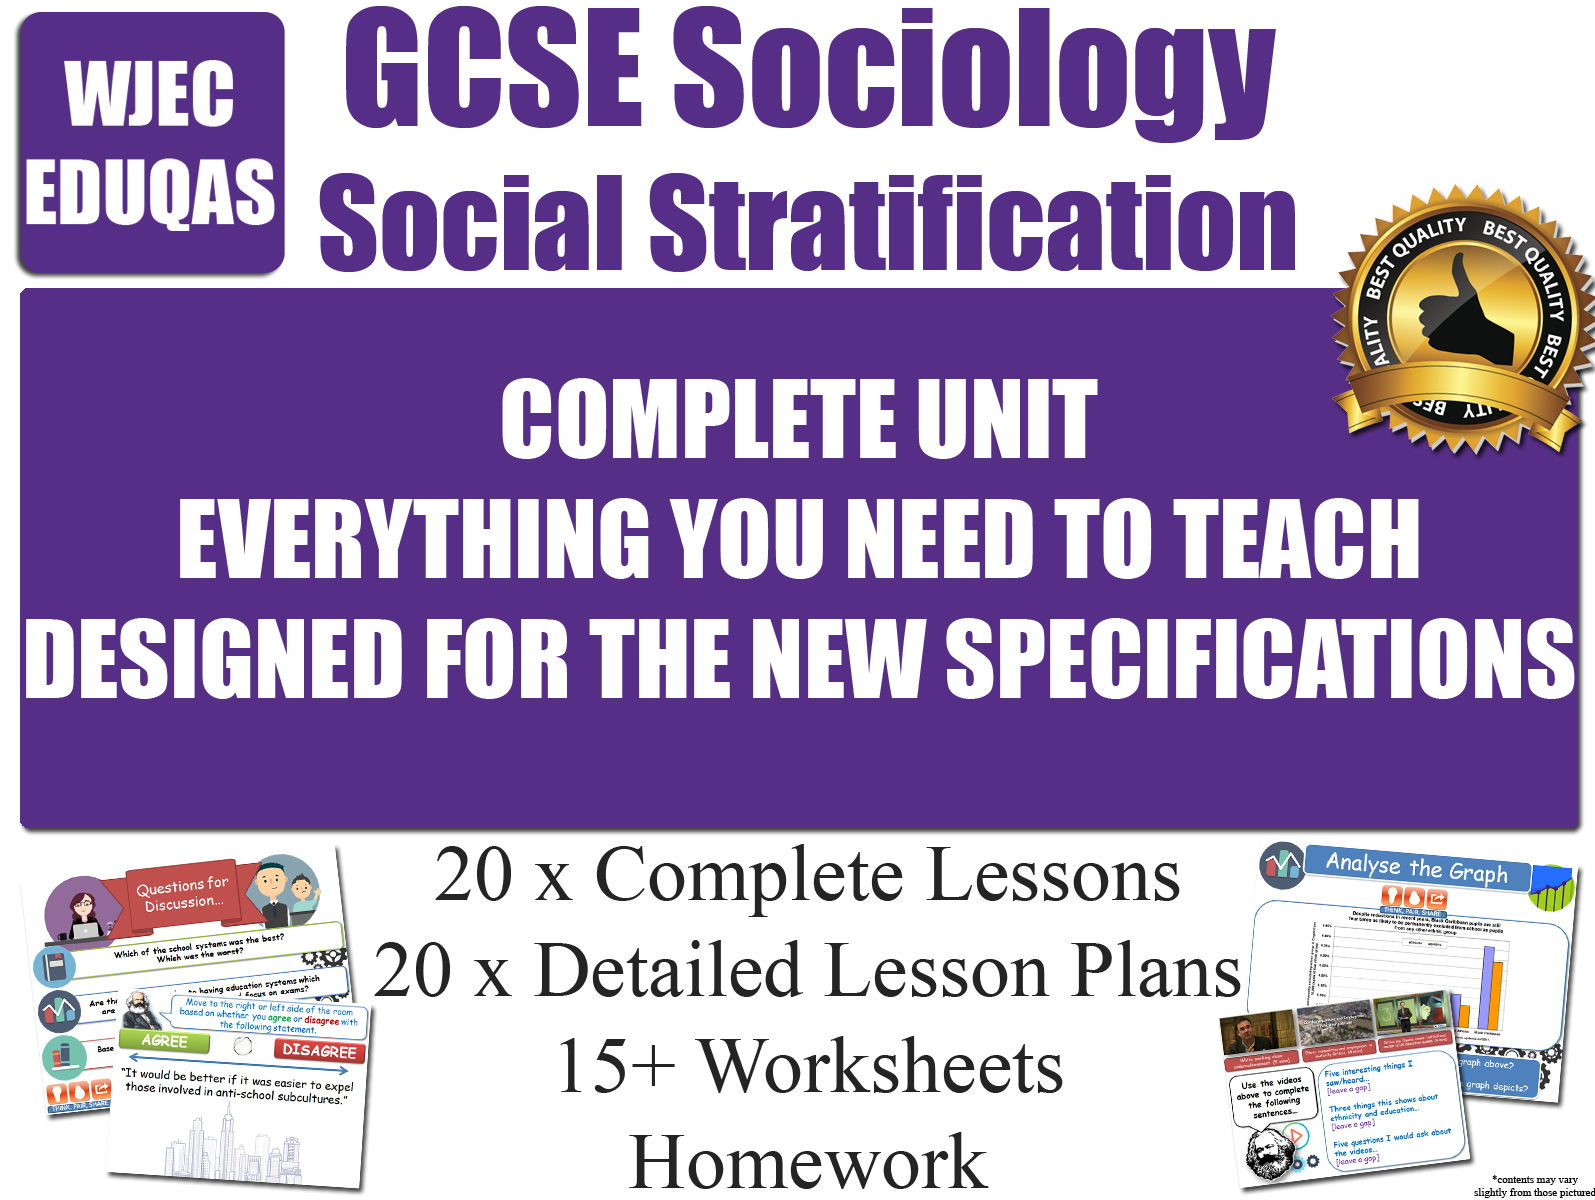 Social Stratification (20 Lessons) WJEC / EDUQAS [ GCSE Sociology ] POWER AUTHORITY - NEW 2017